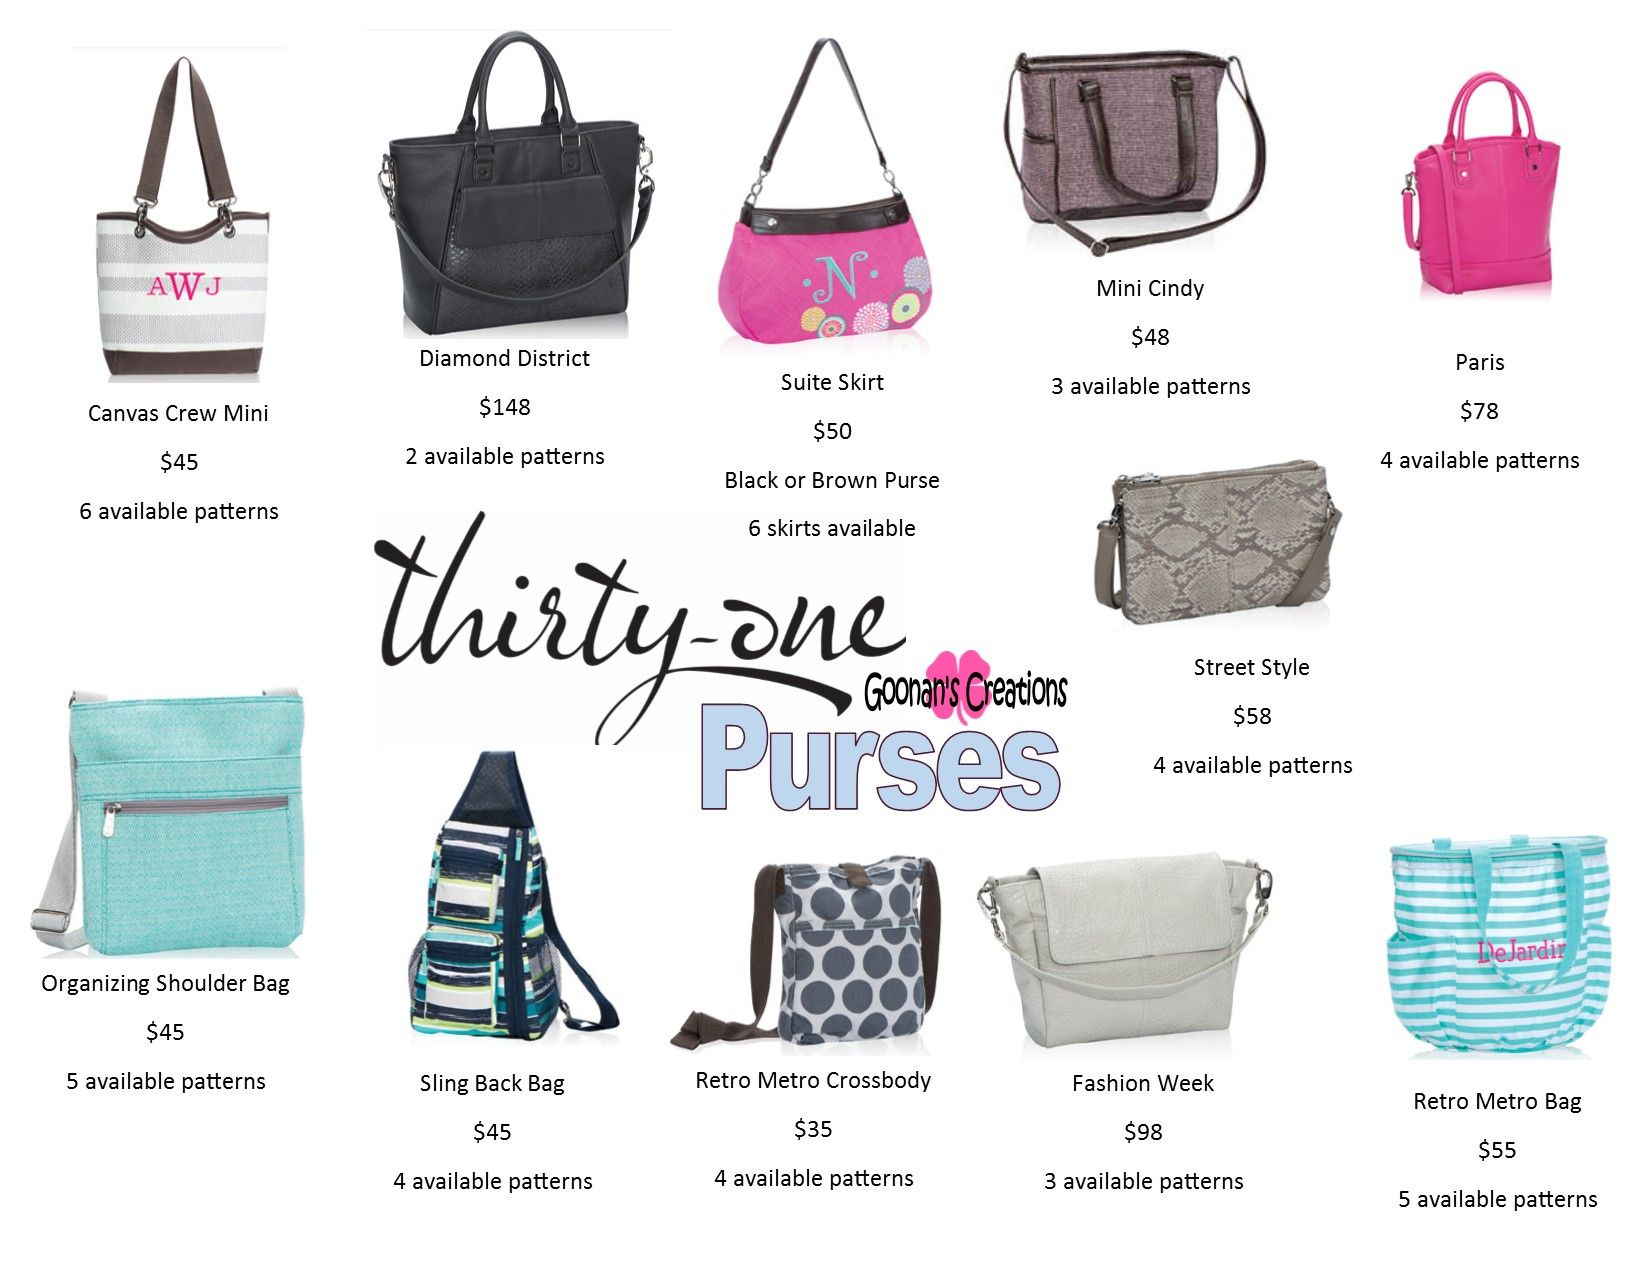 Thirty One Purses: Canvas Crew Mini, Diamond District, Suite Skirt ...